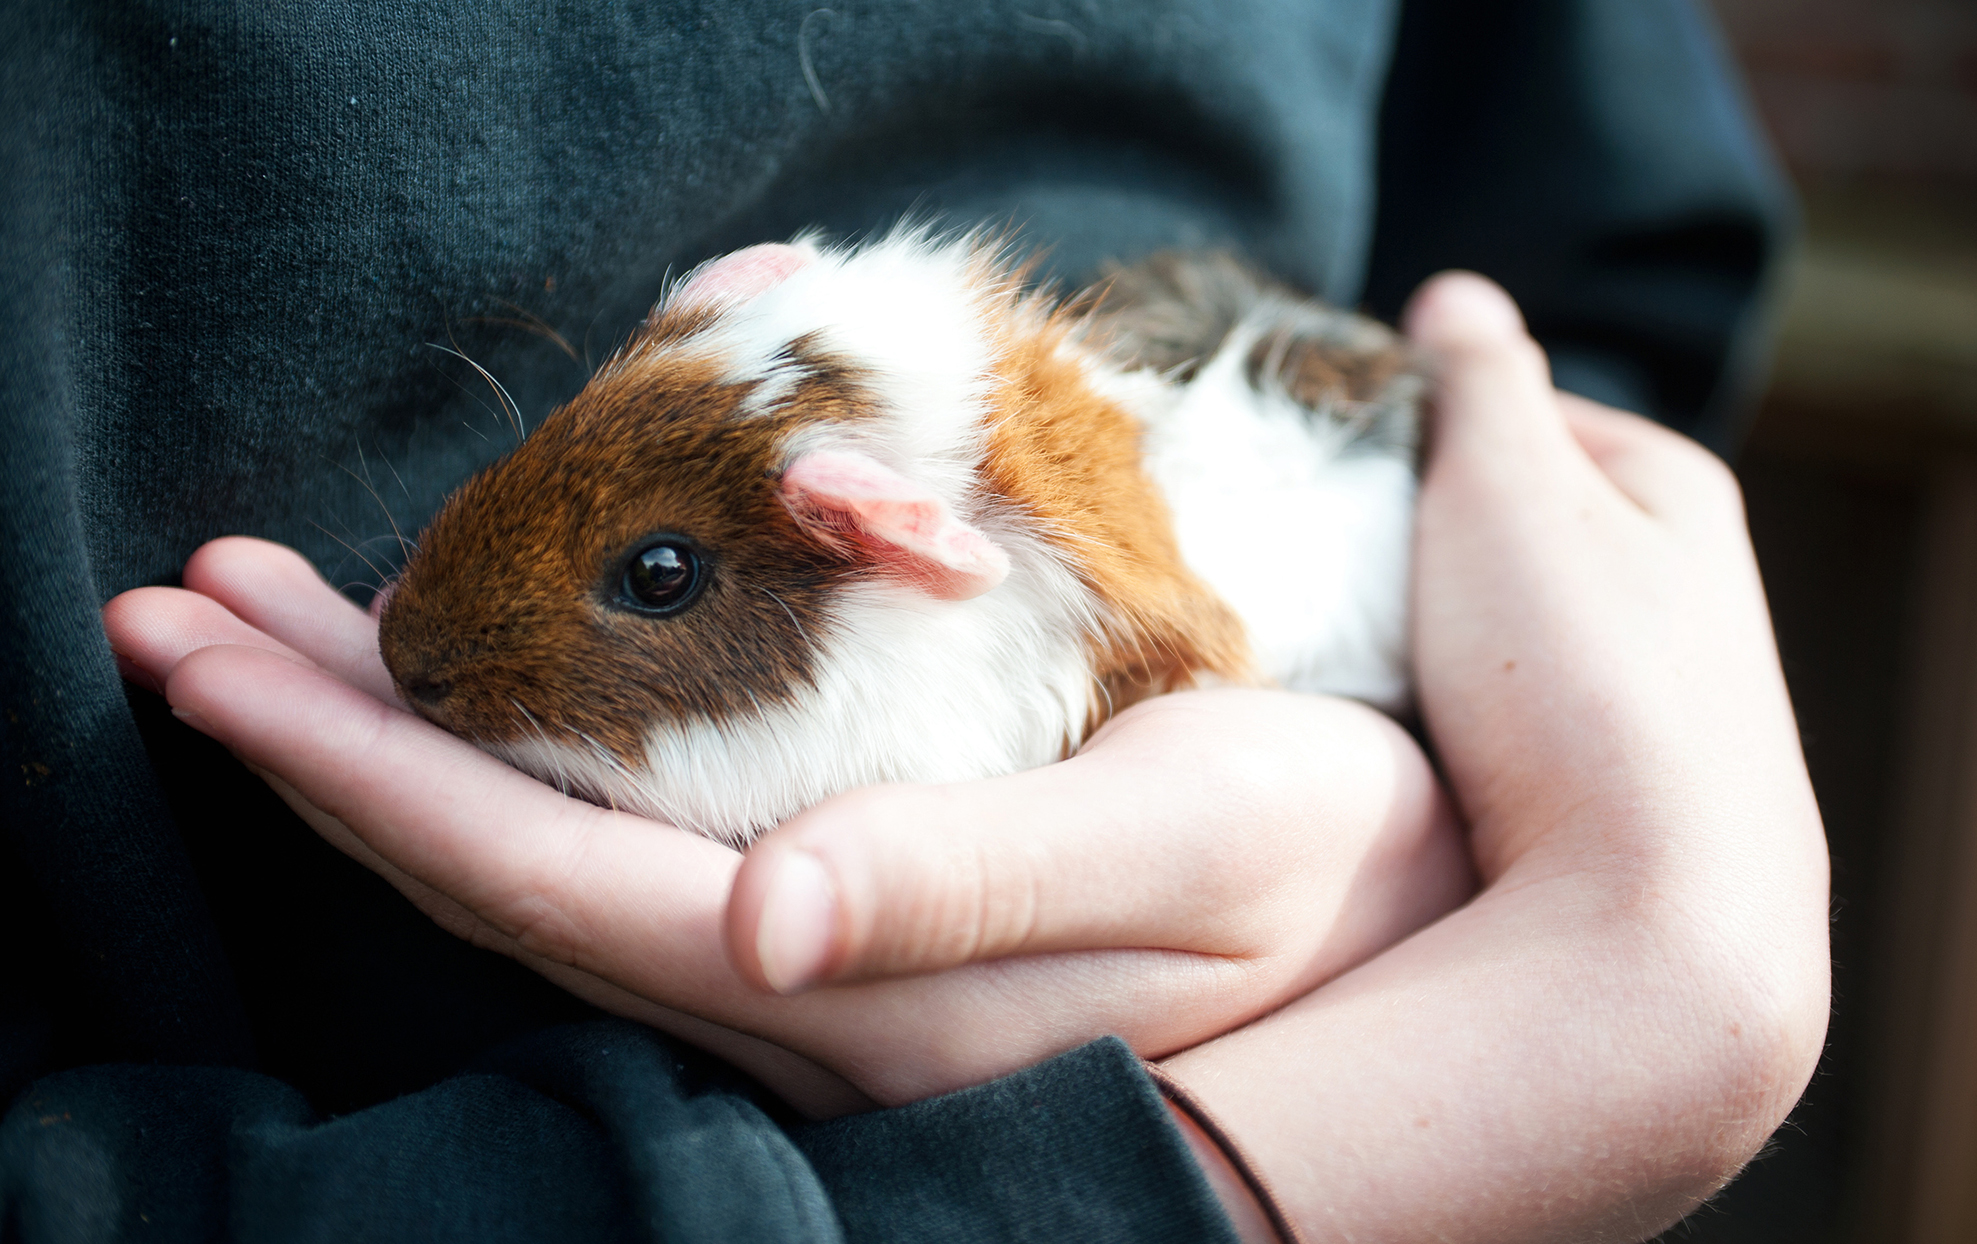 A guinea pig being held in someone's hands